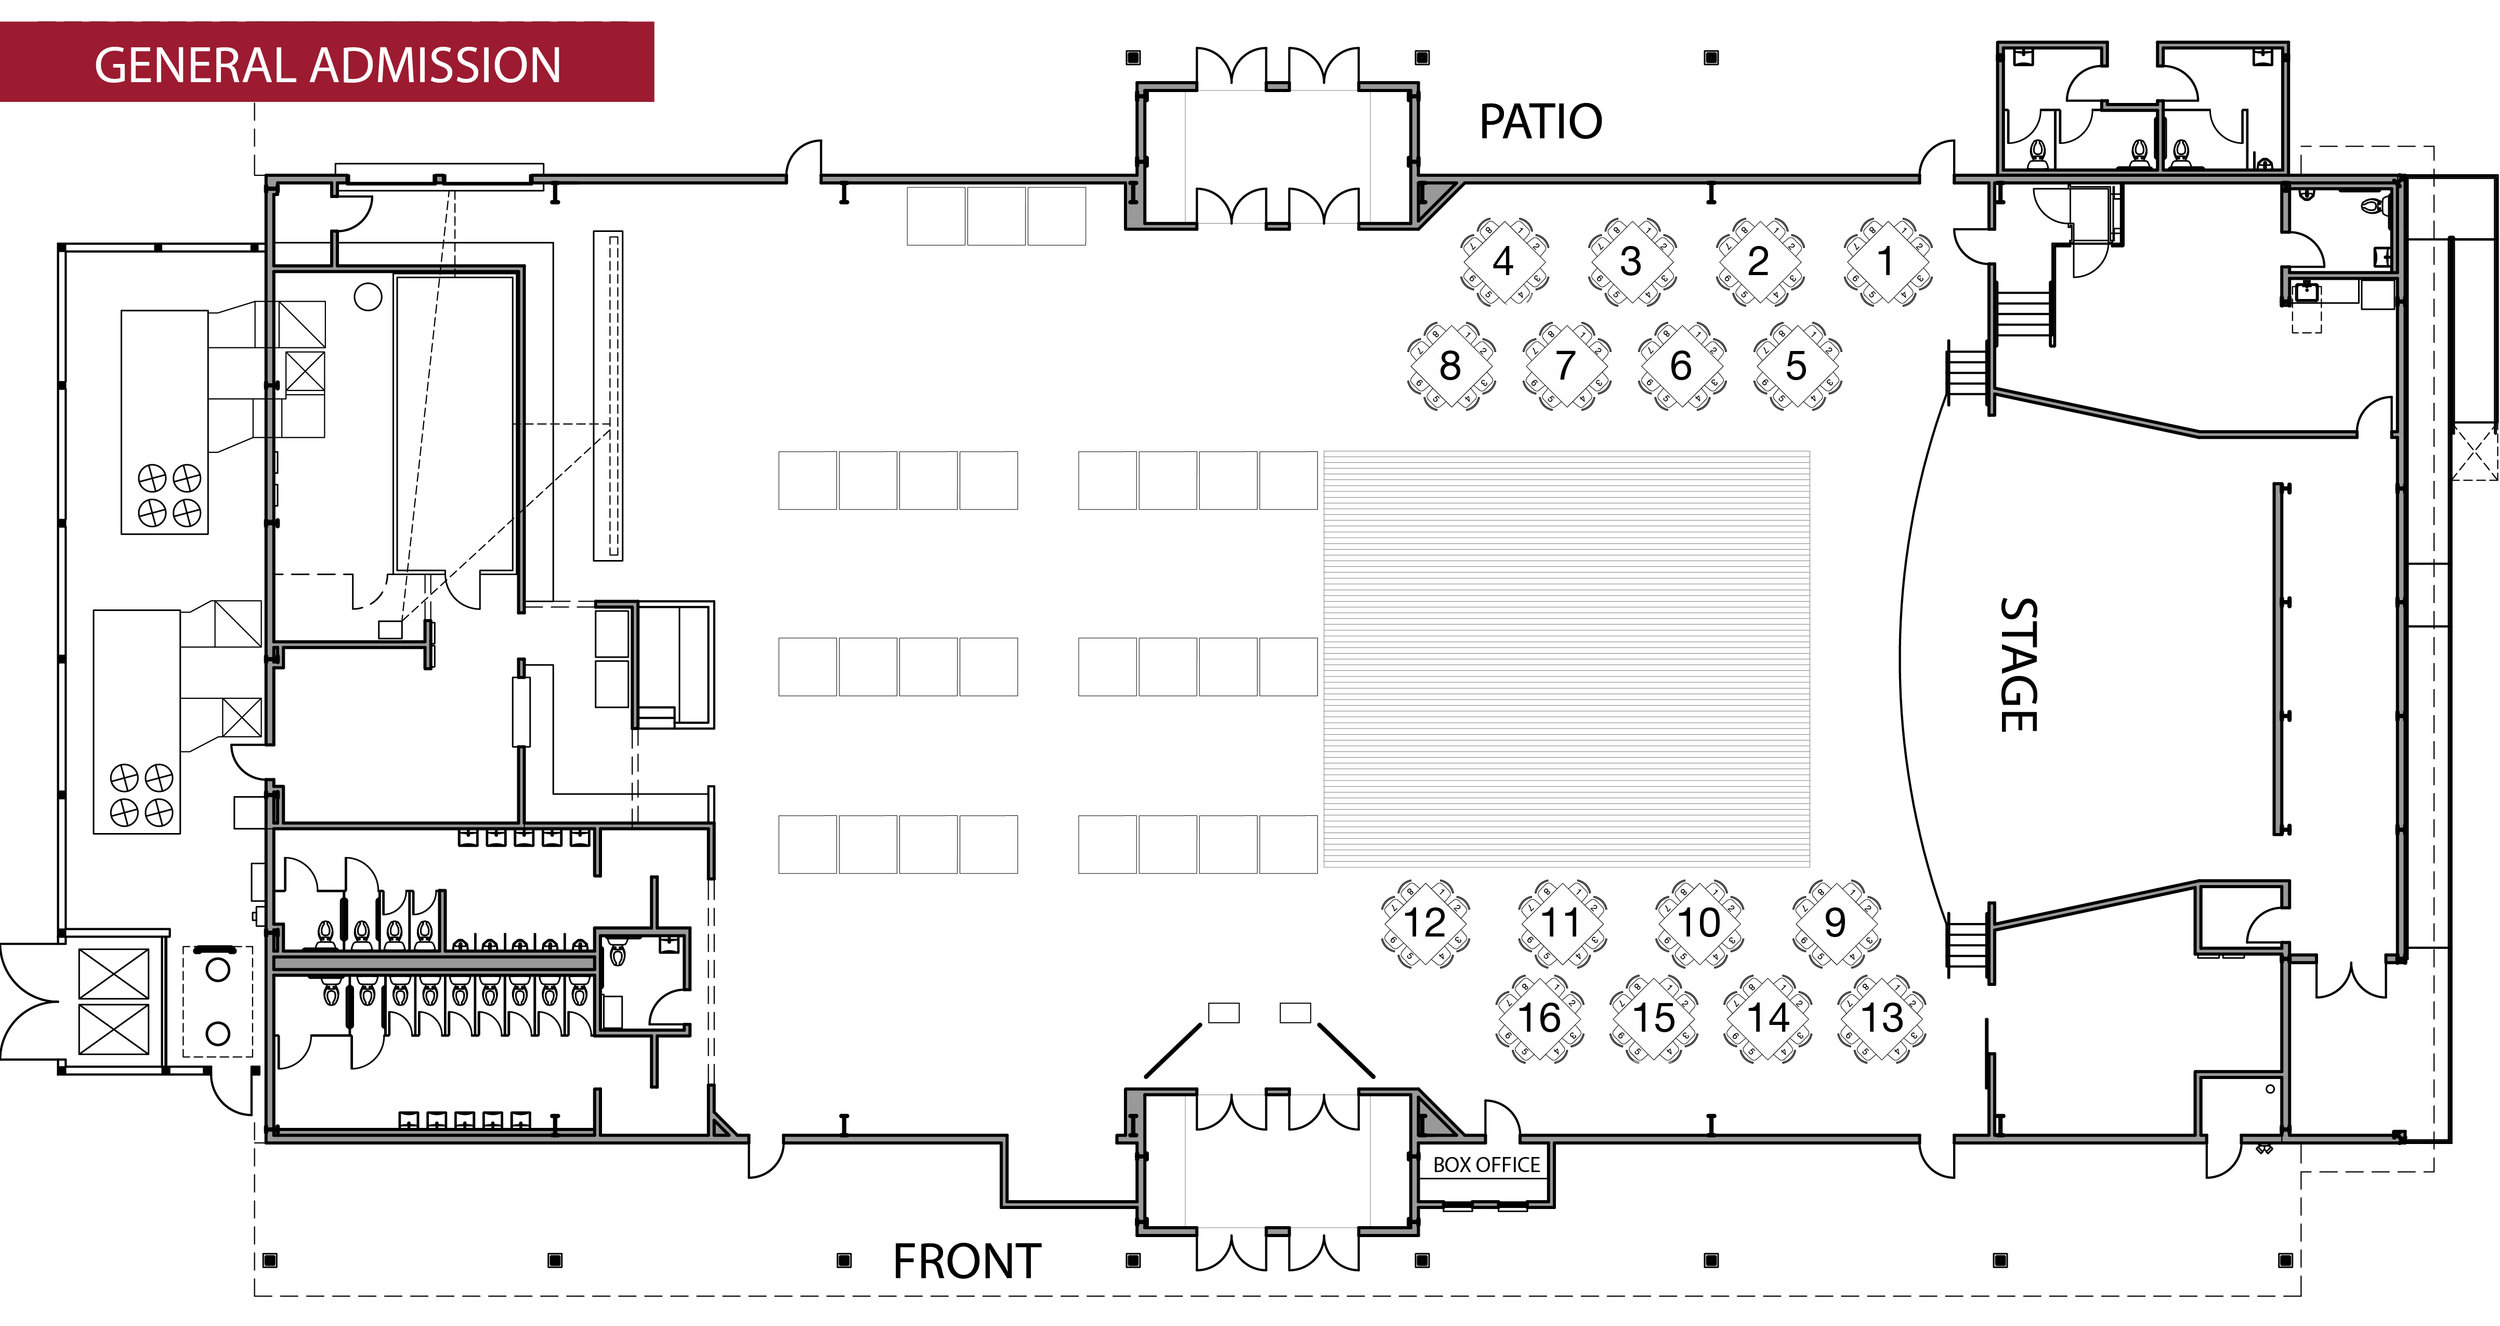 021519_Updated_Floorplan_Dancefloor_GA_web-01.jpg